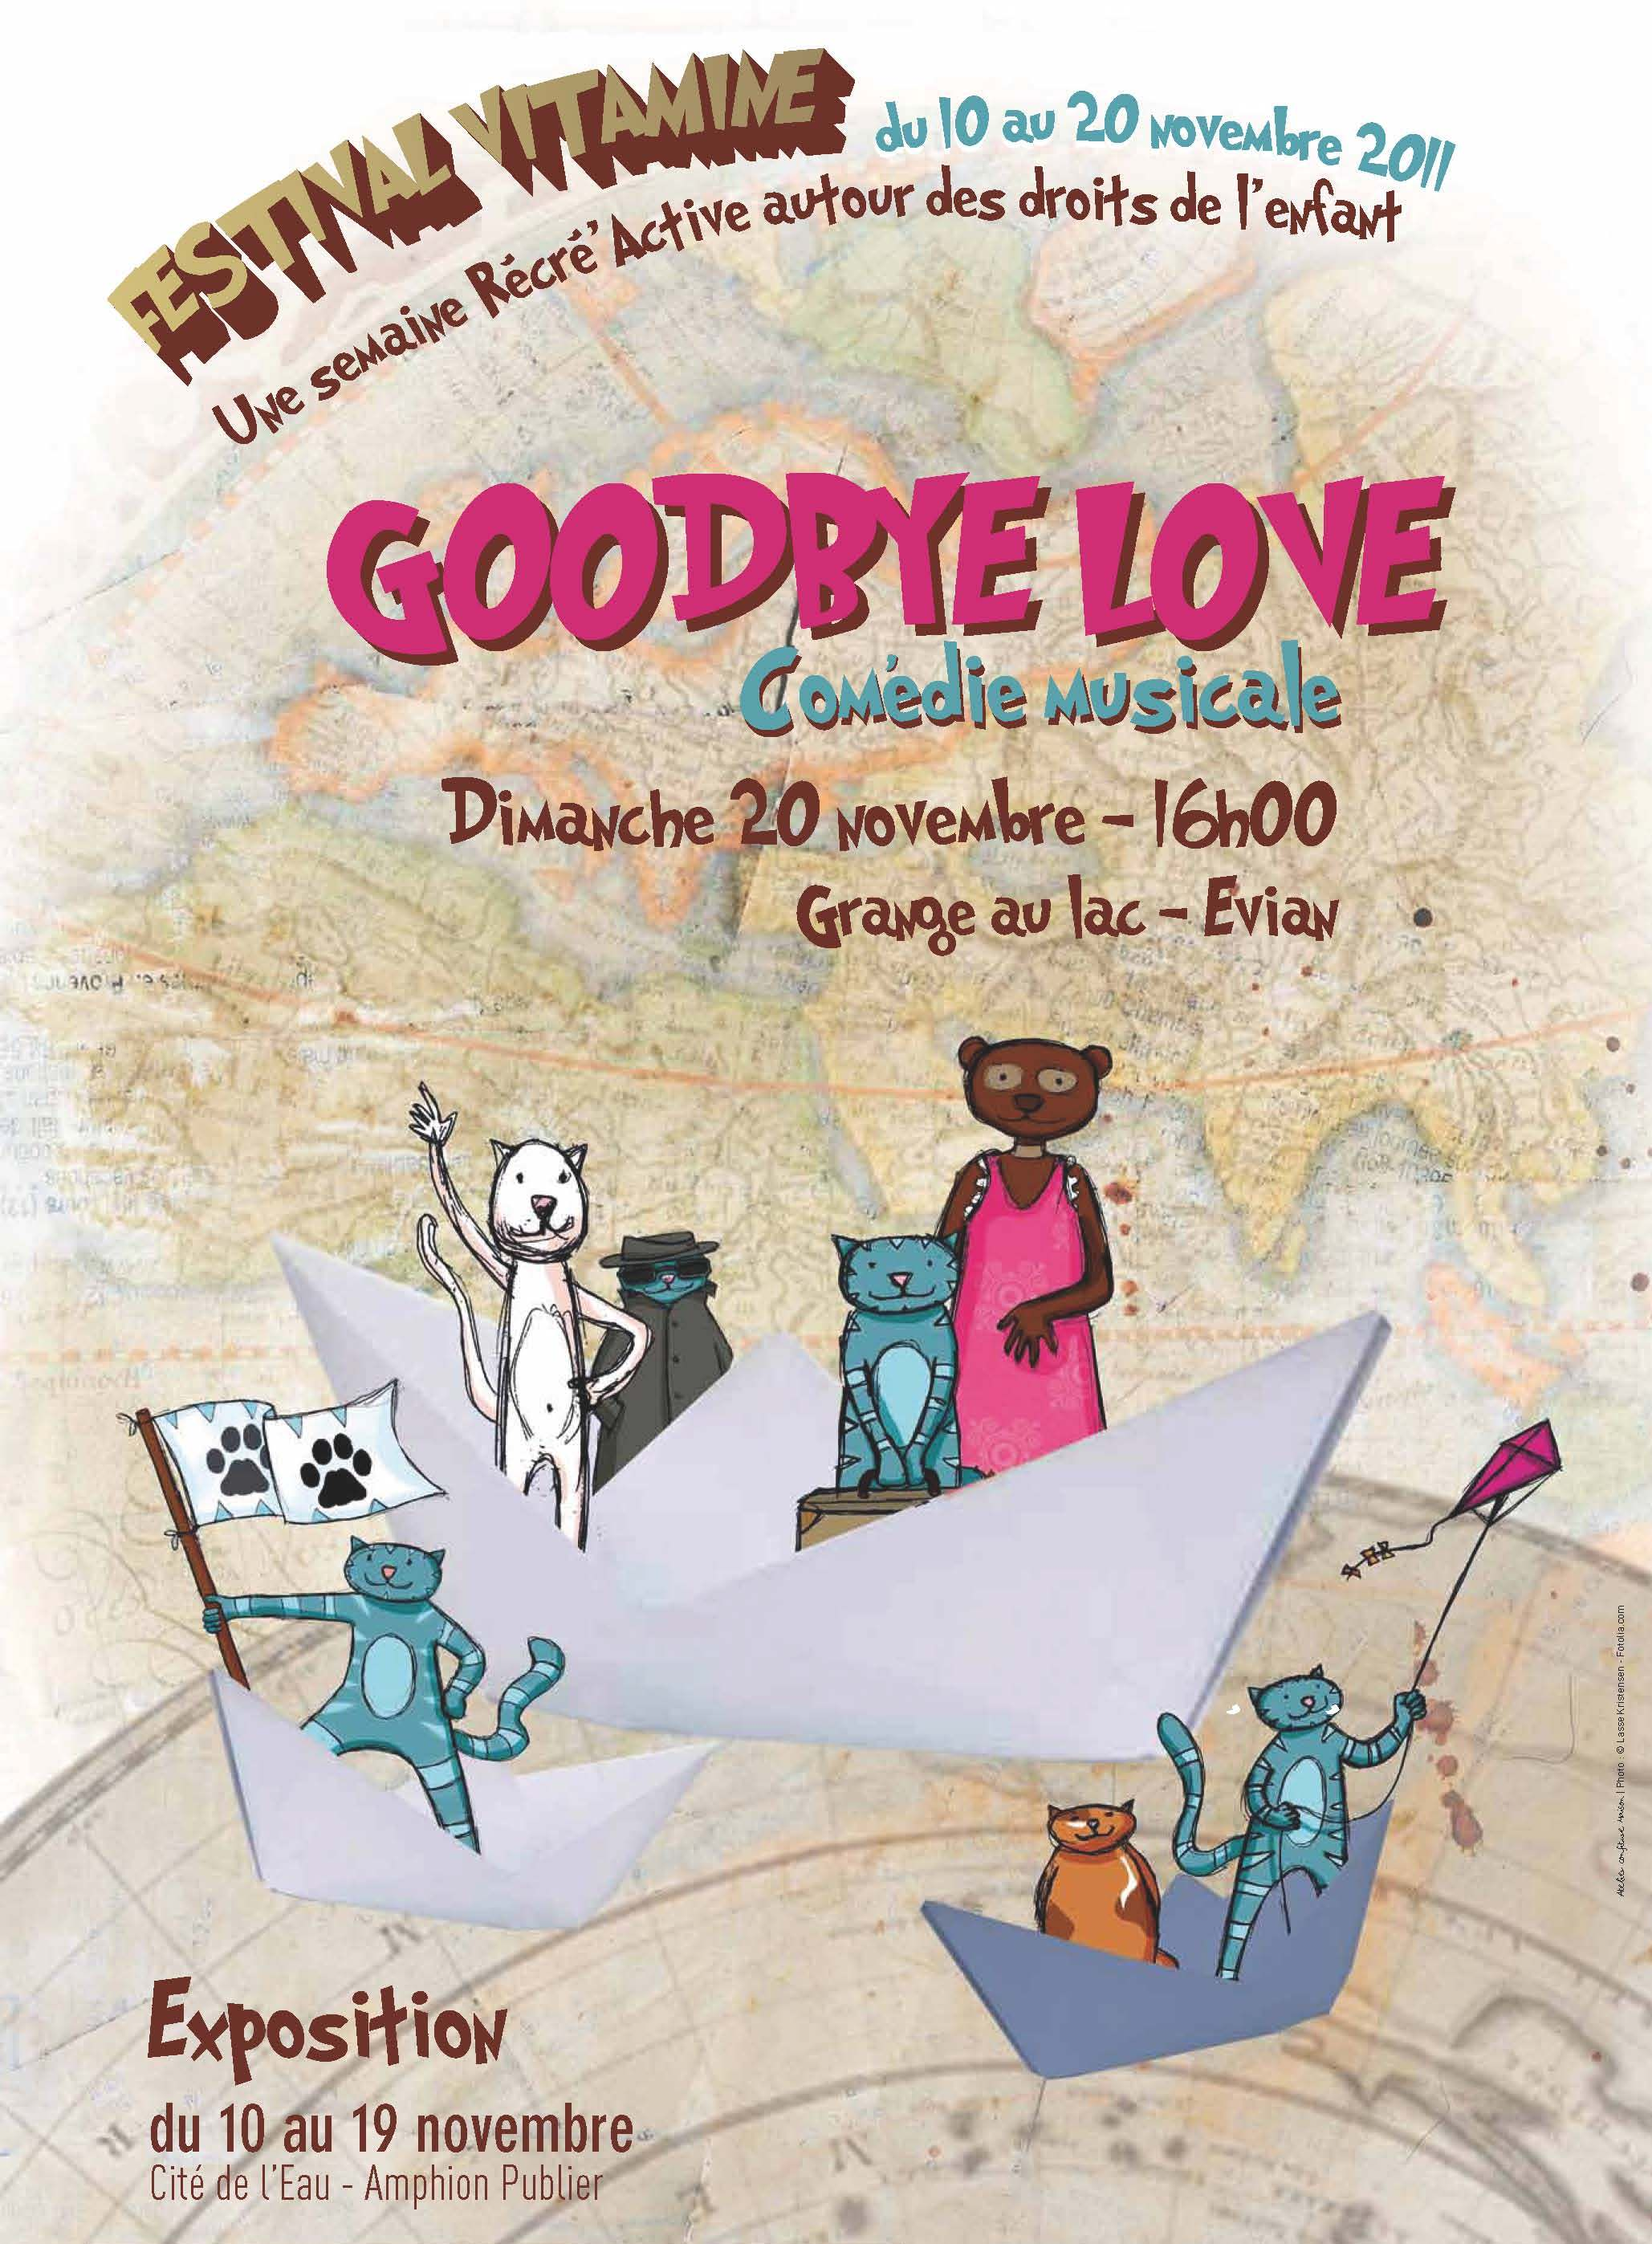 VITAMINE 2011 GOOD BYE LOVE